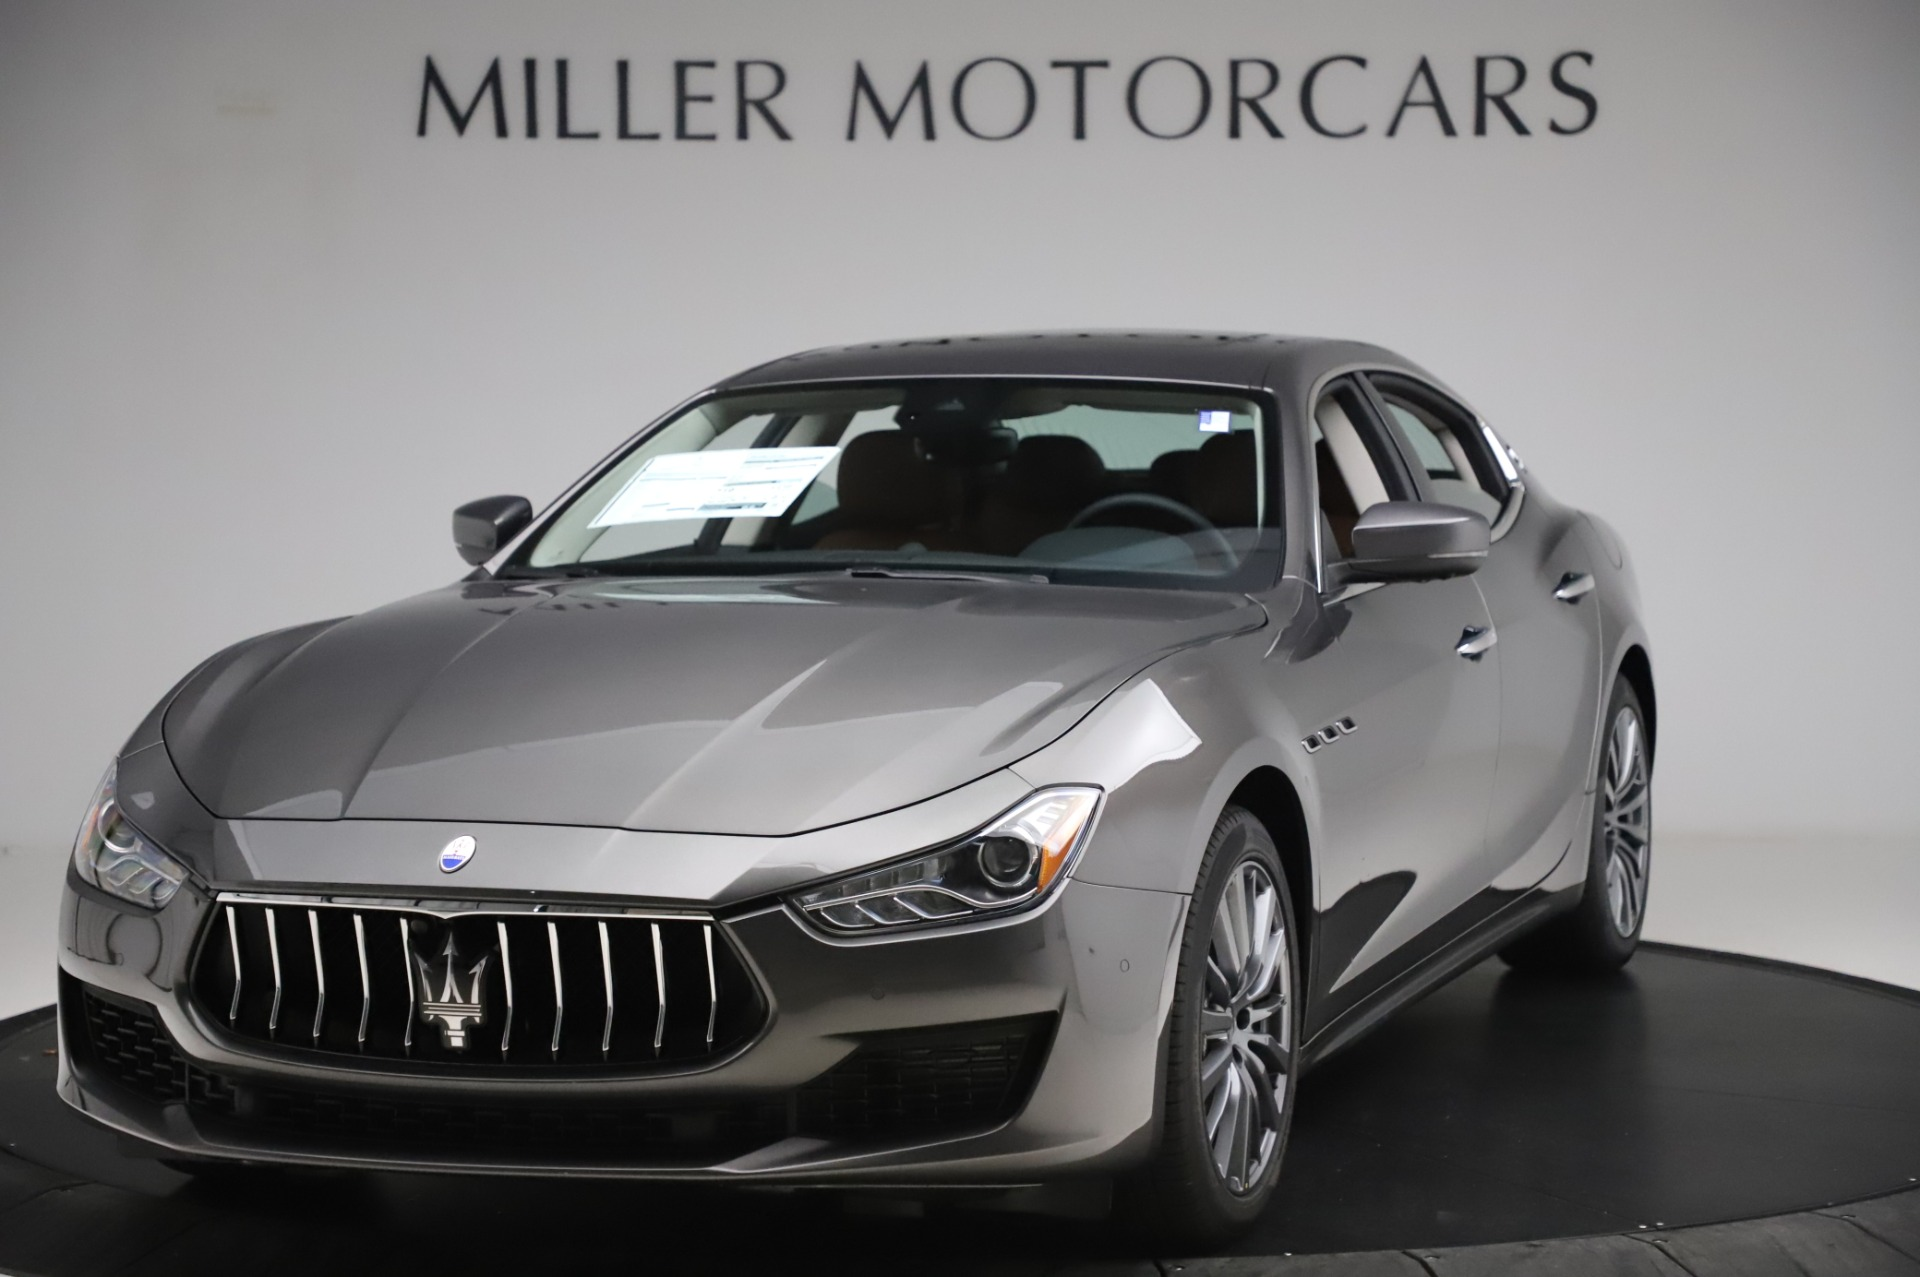 New 2020 Maserati Ghibli S Q4 for sale $83,785 at Rolls-Royce Motor Cars Greenwich in Greenwich CT 06830 1